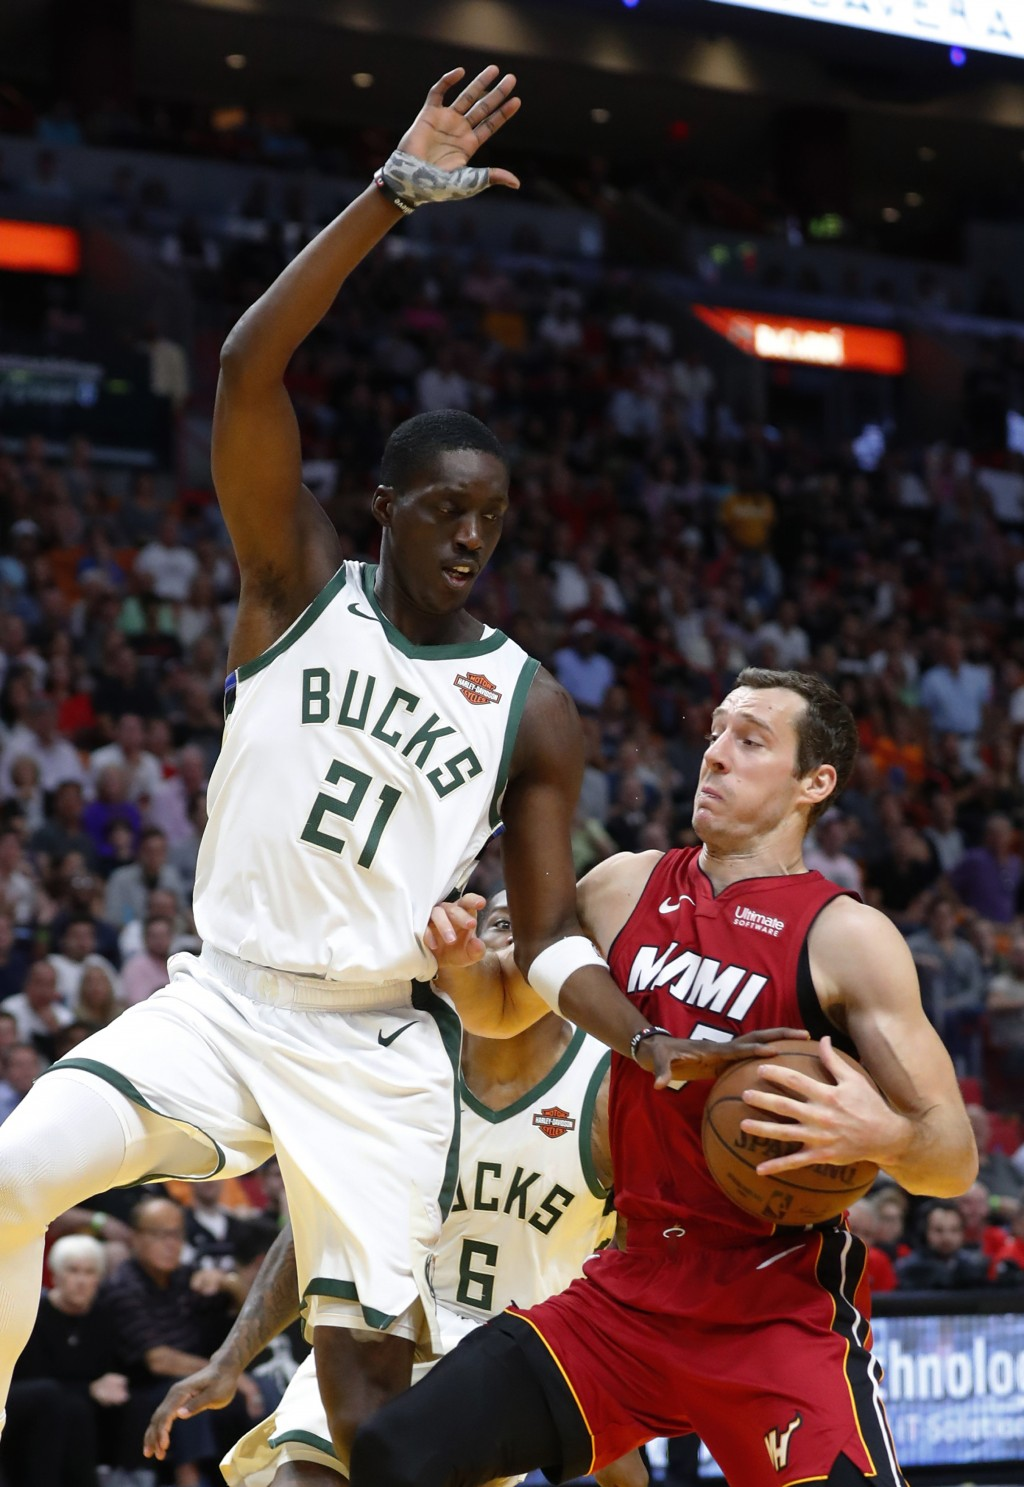 Miami Heat guard Goran Dragic goes up for a shot against Milwaukee Bucks guard Tony Snell (21) during the first half of an NBA basketball game Friday,